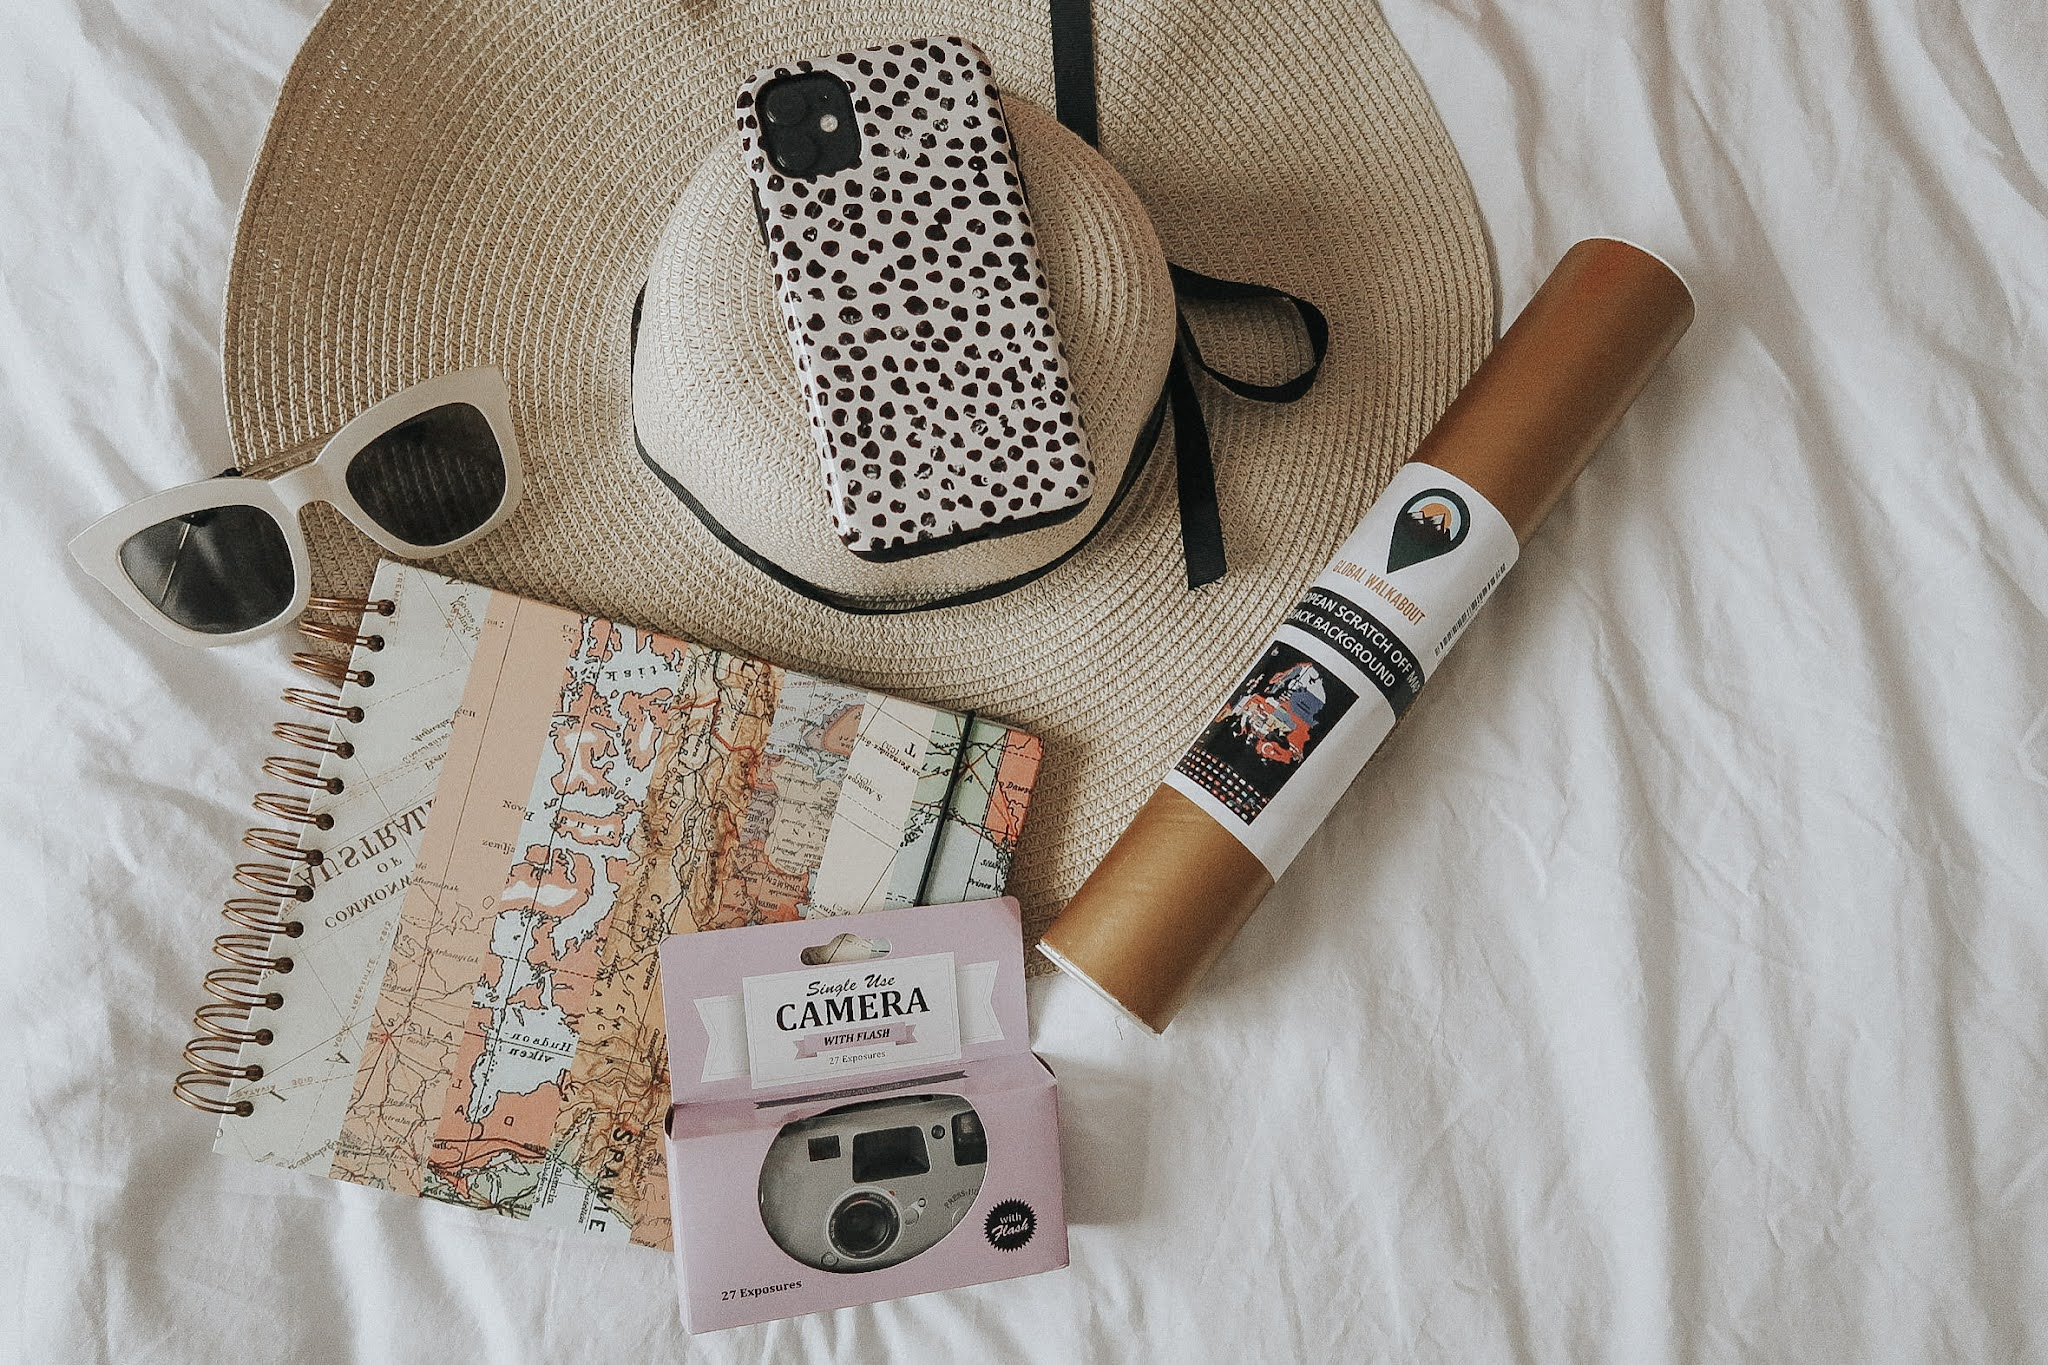 A purple disposable camera, white sunglasses, a gold rolled up map and scrapobook.